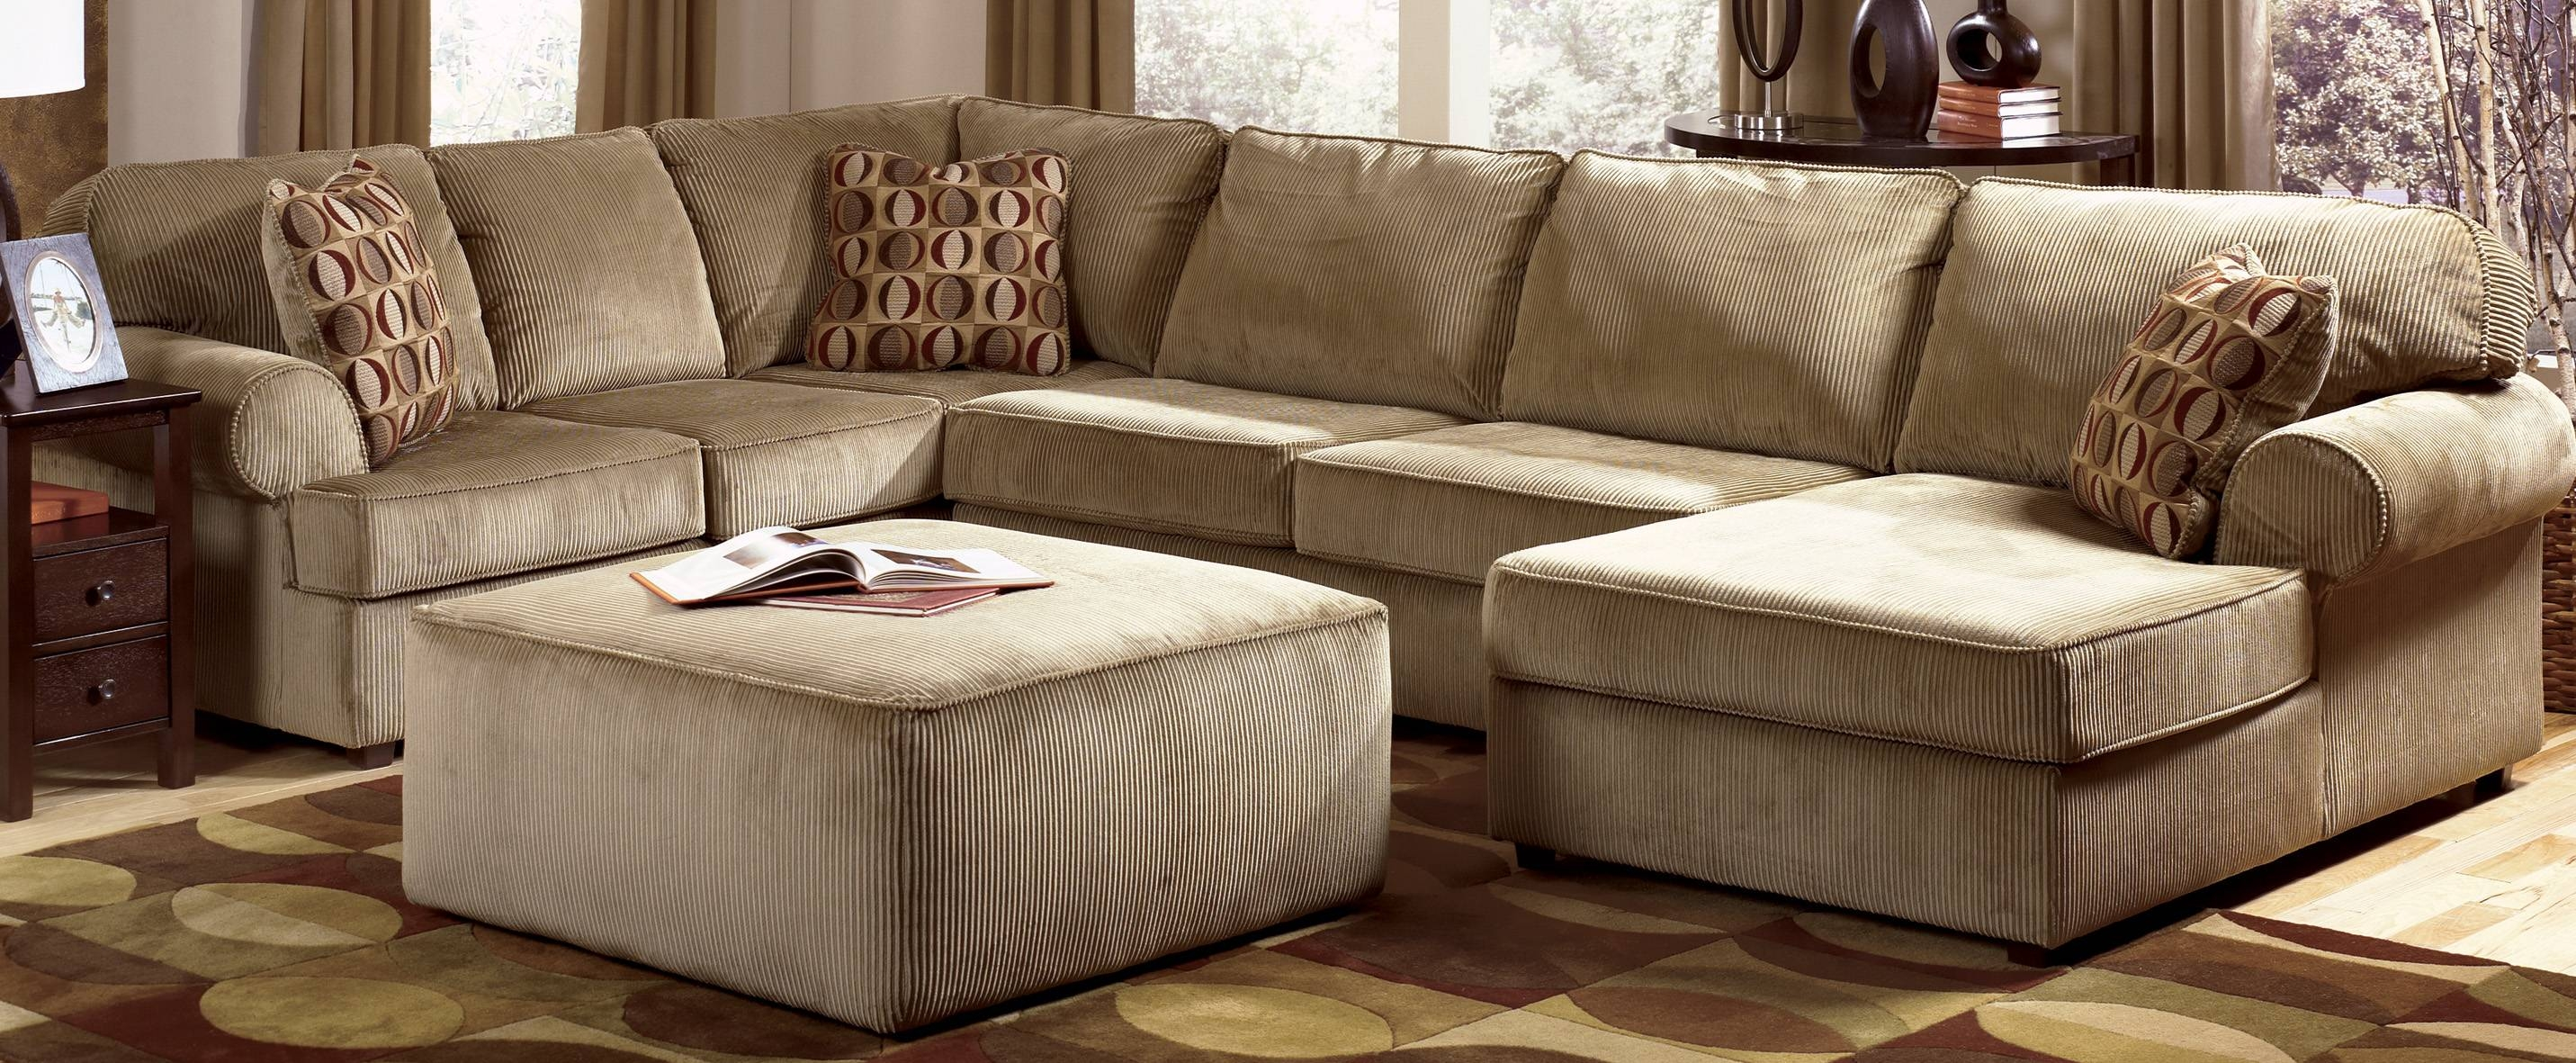 Fascinating Cheap U Shaped Sectional Sofas 12 In Media Sofa within Media Sofa Sectionals (Image 6 of 25)